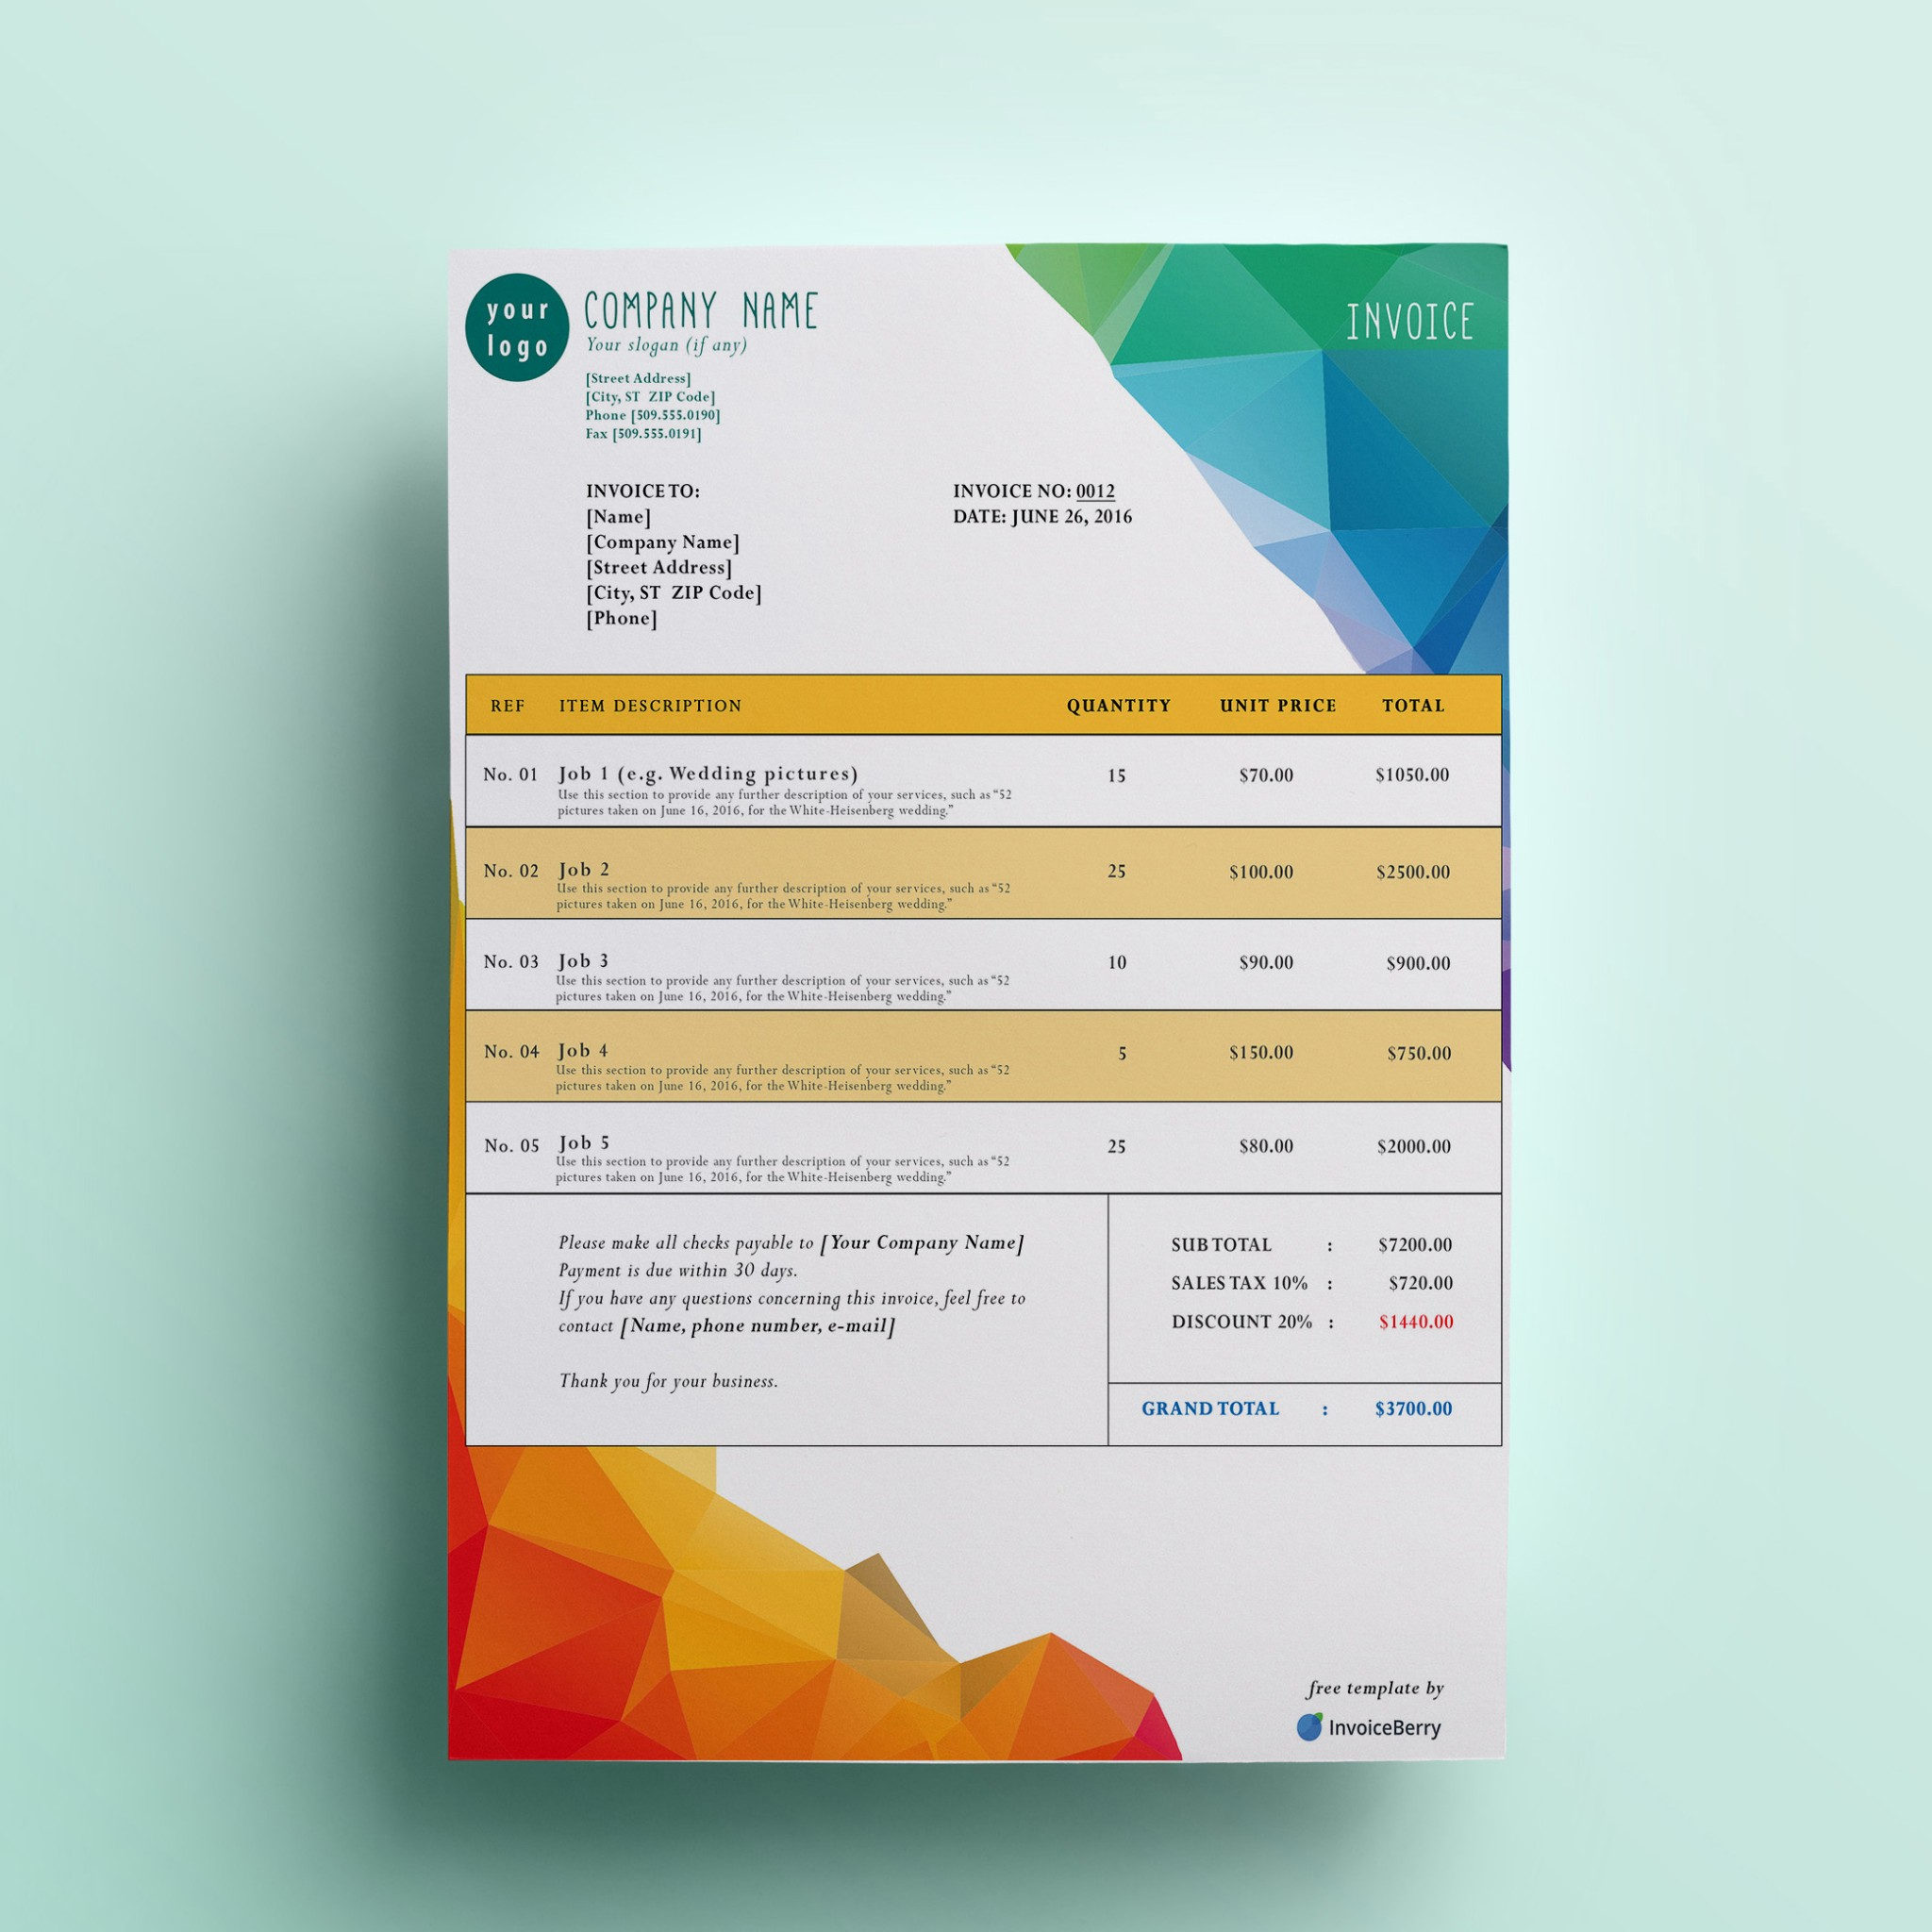 Free Invoice Templates By InvoiceBerry The Grid System - Free creative invoice template cheap online stores